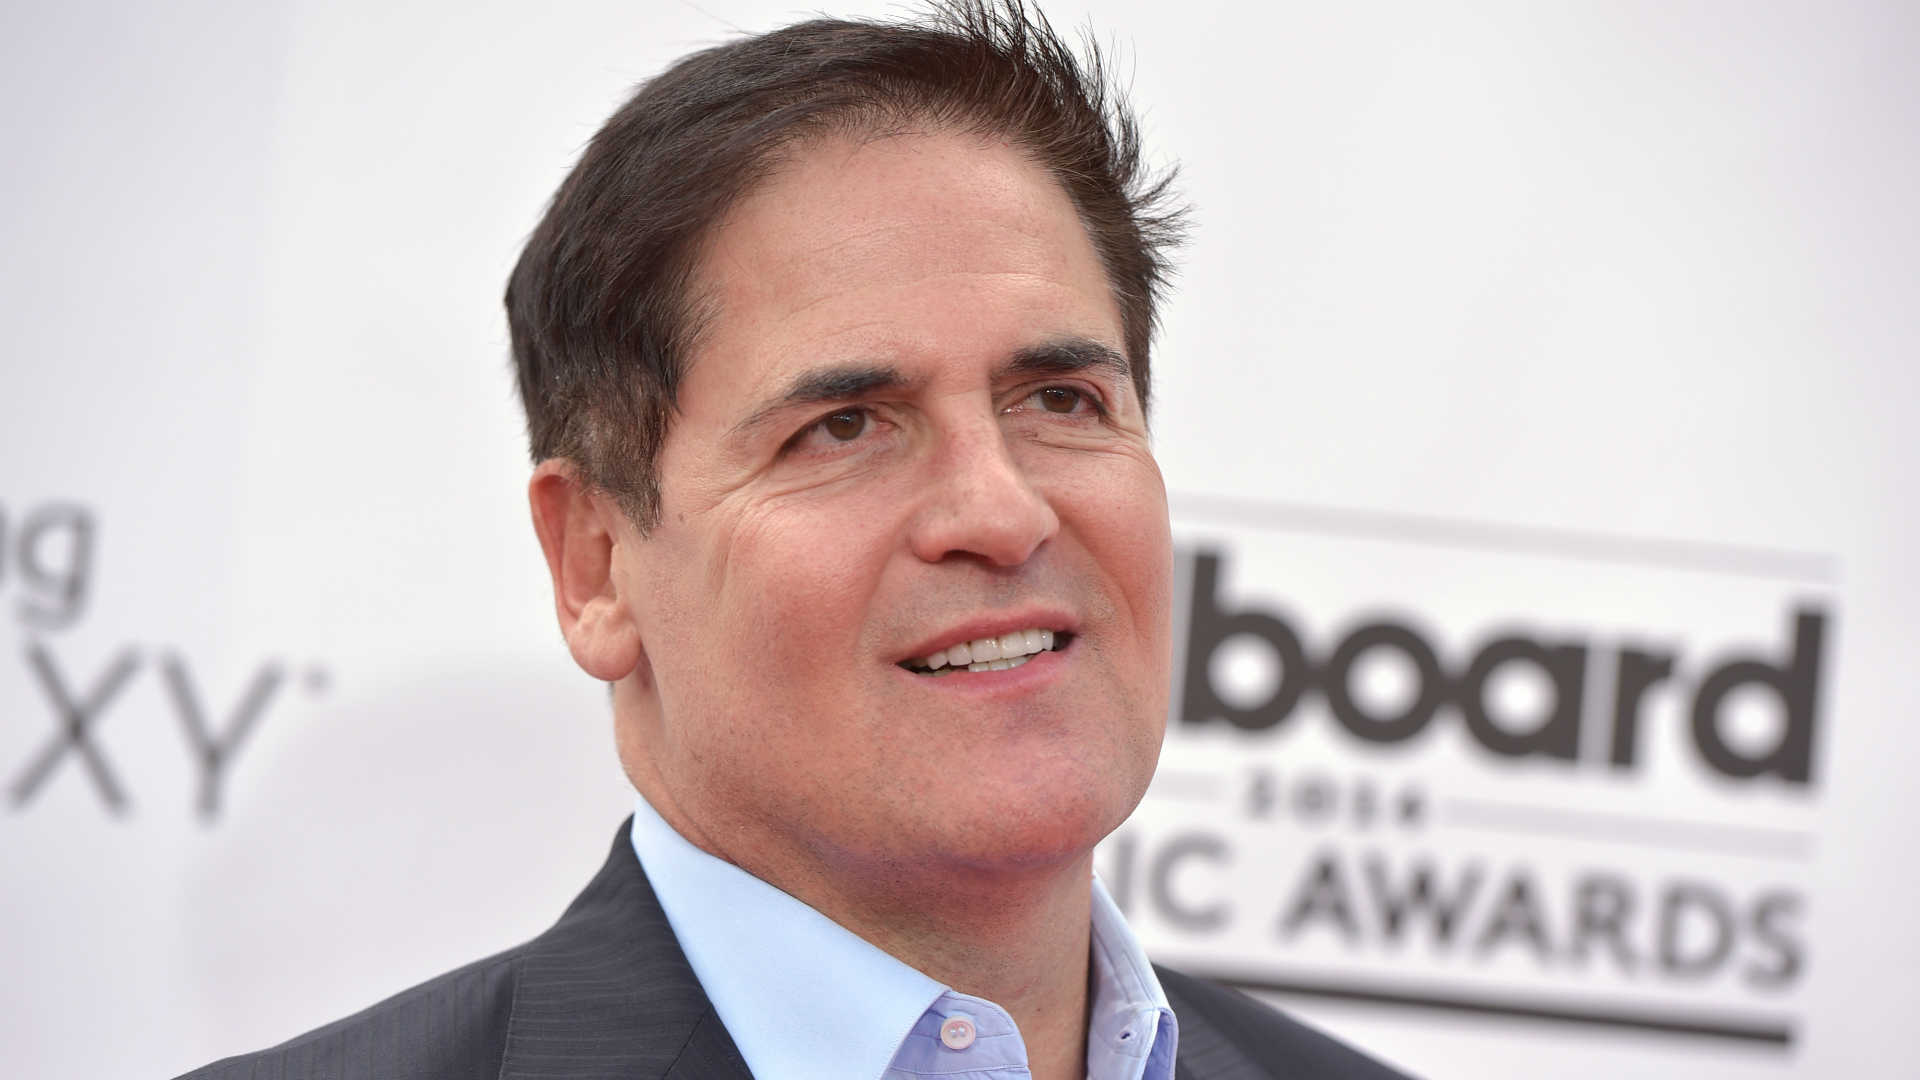 Mark Cuban-052114-AP-FTR.jpg